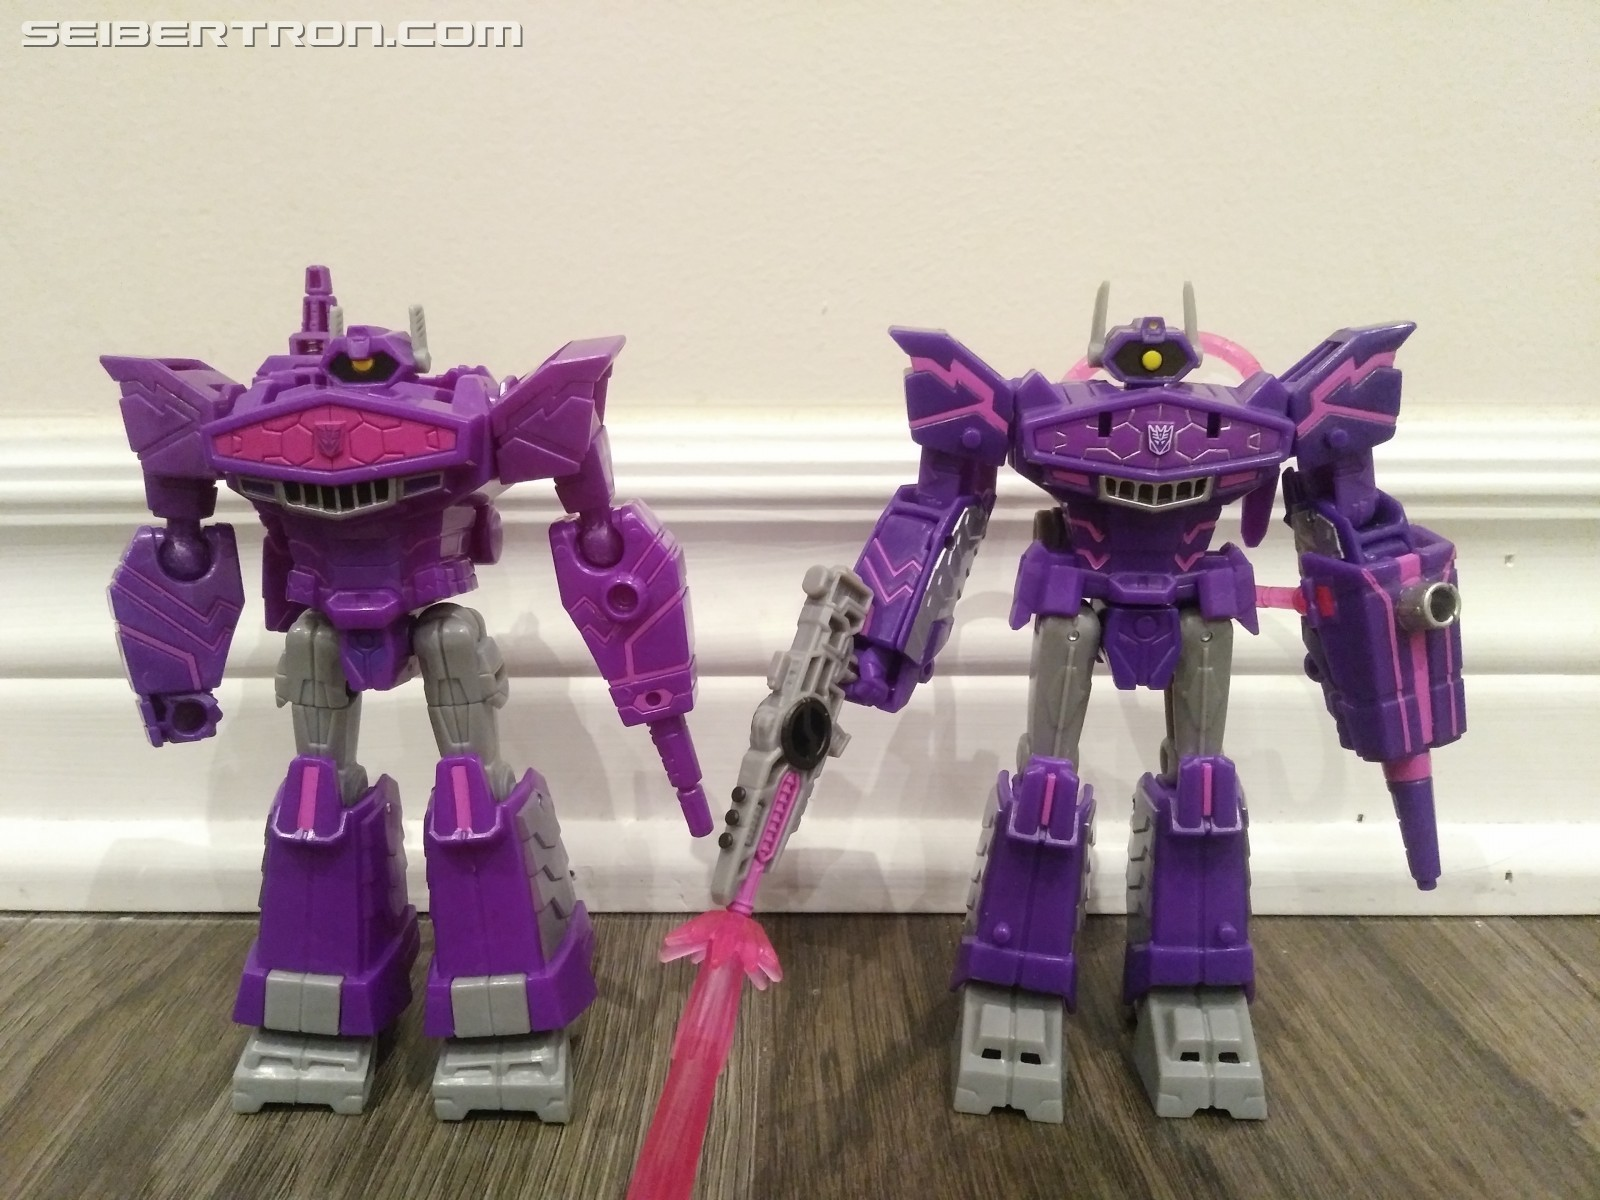 Transformers News: Pictorial Review for Deluxe Shockwave from Transformers Cyberverse